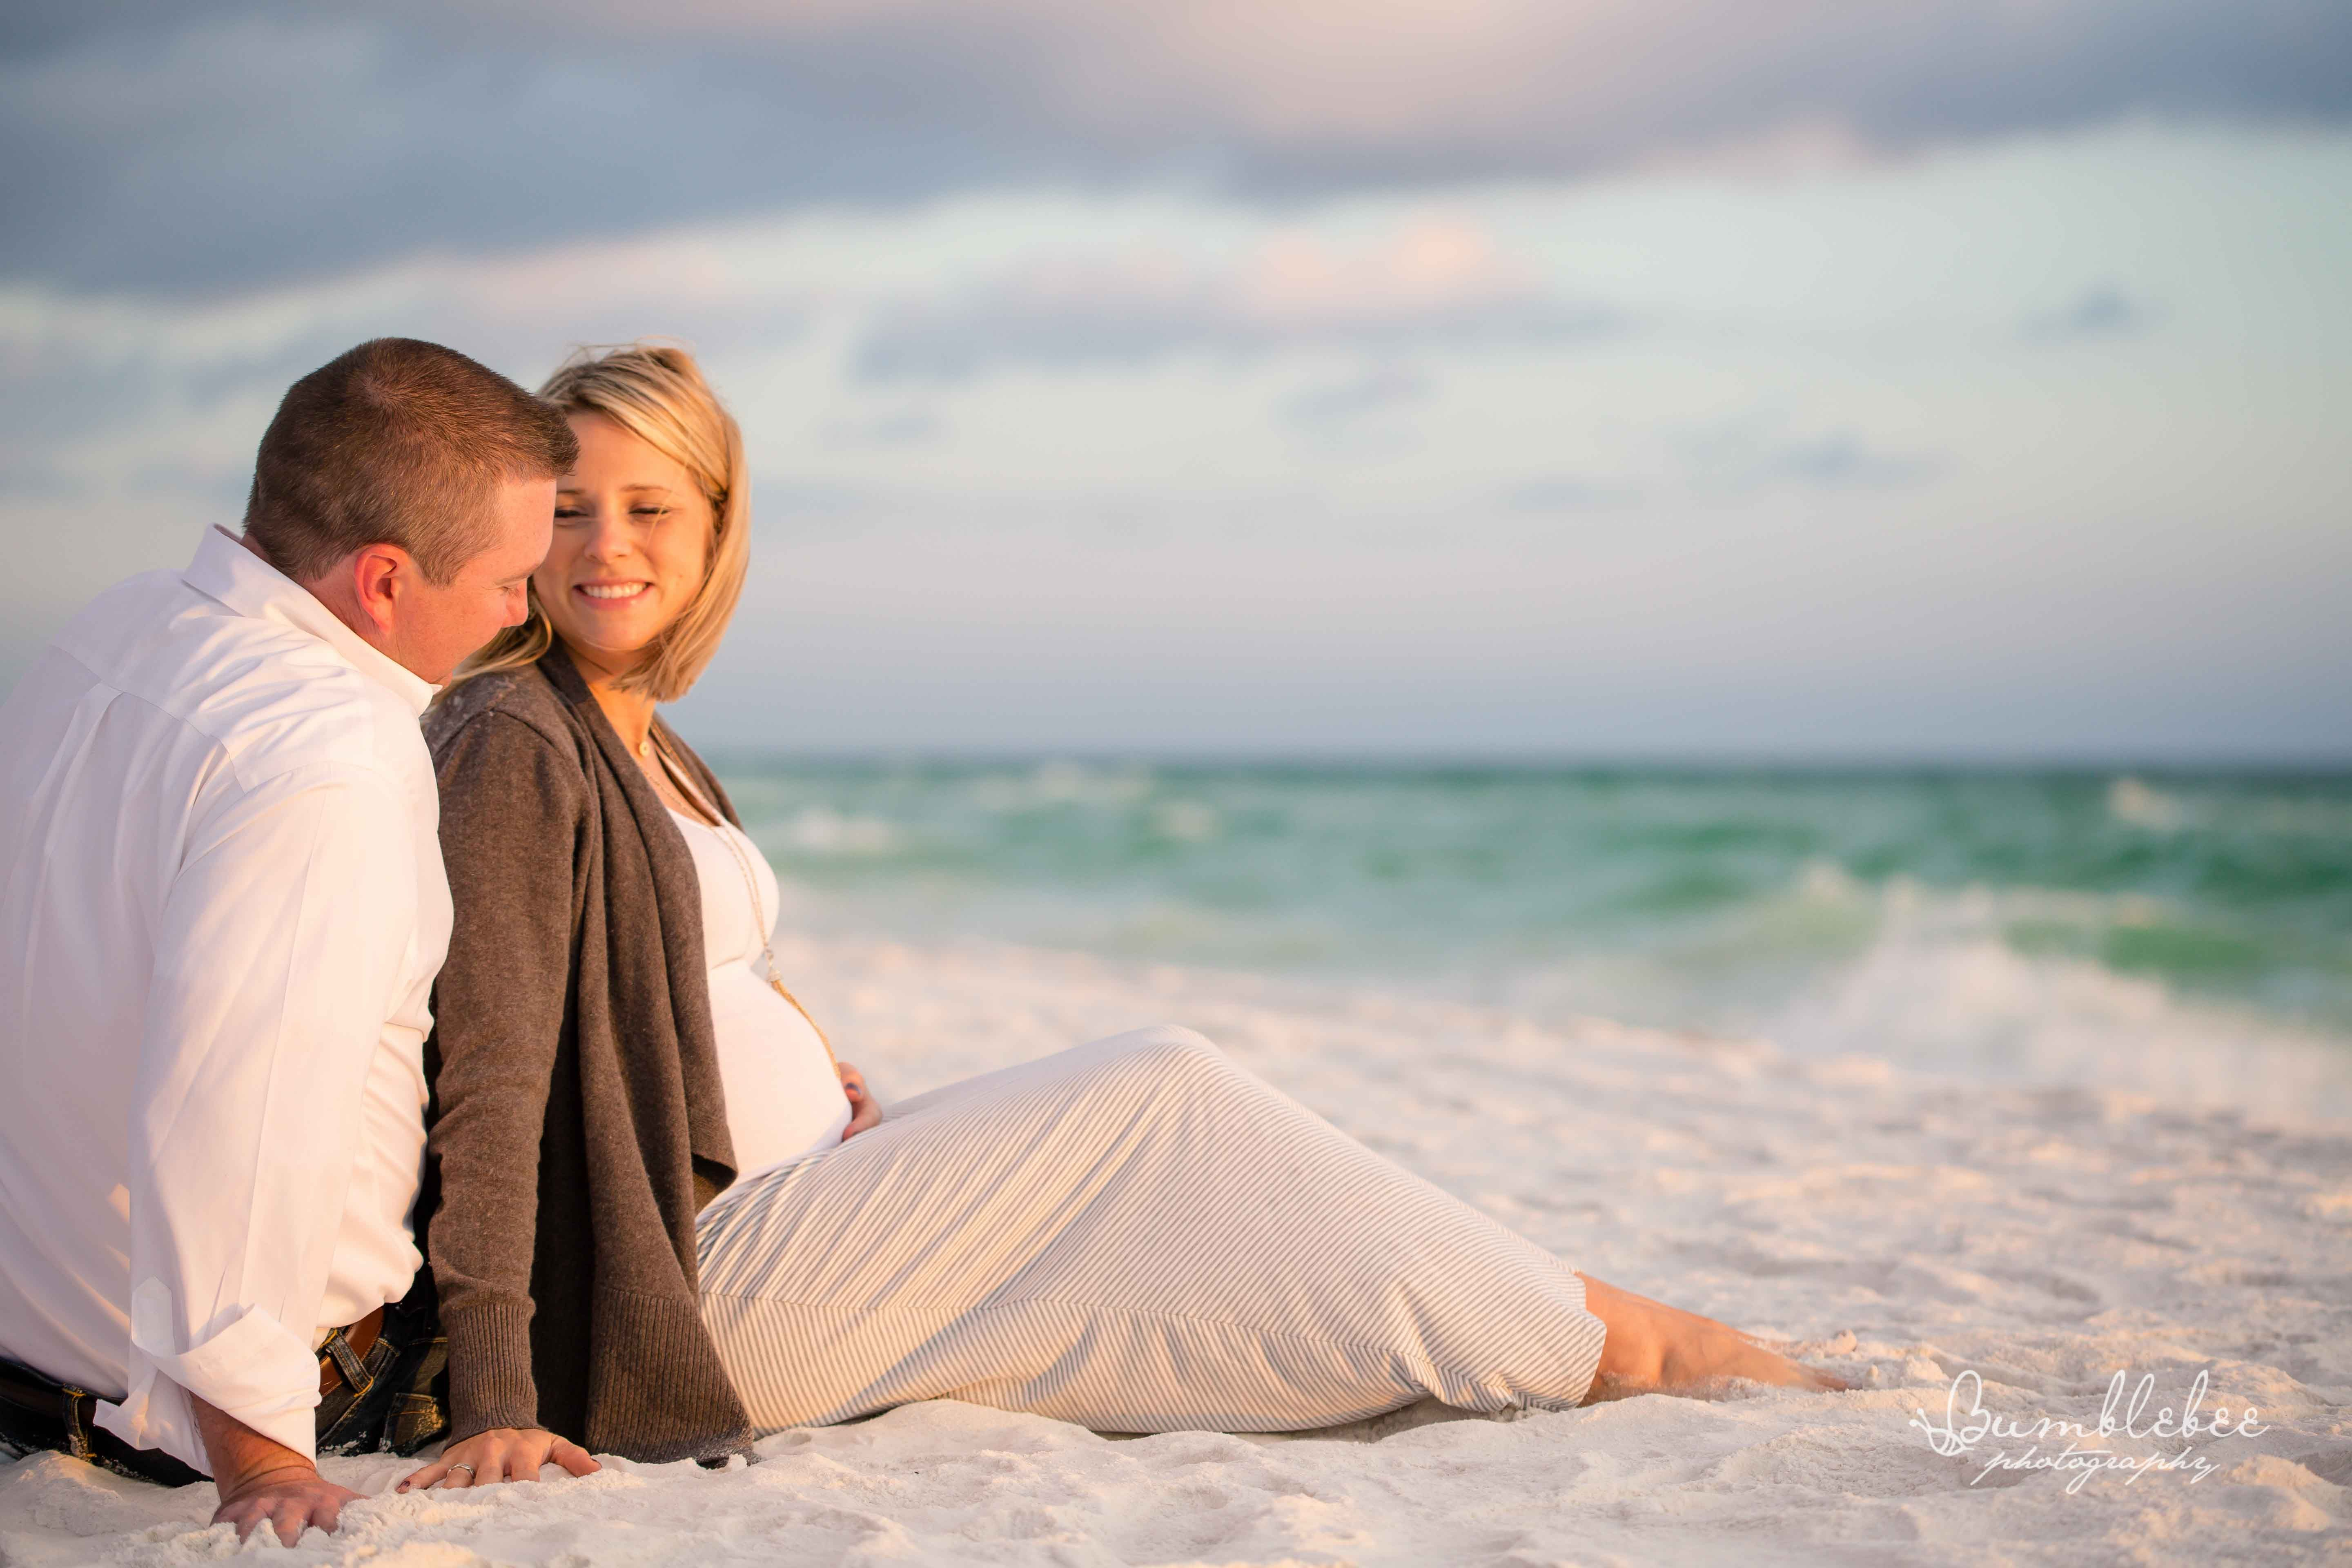 Beach Maternity Session At Watercolor Inn Near Destin Florida By